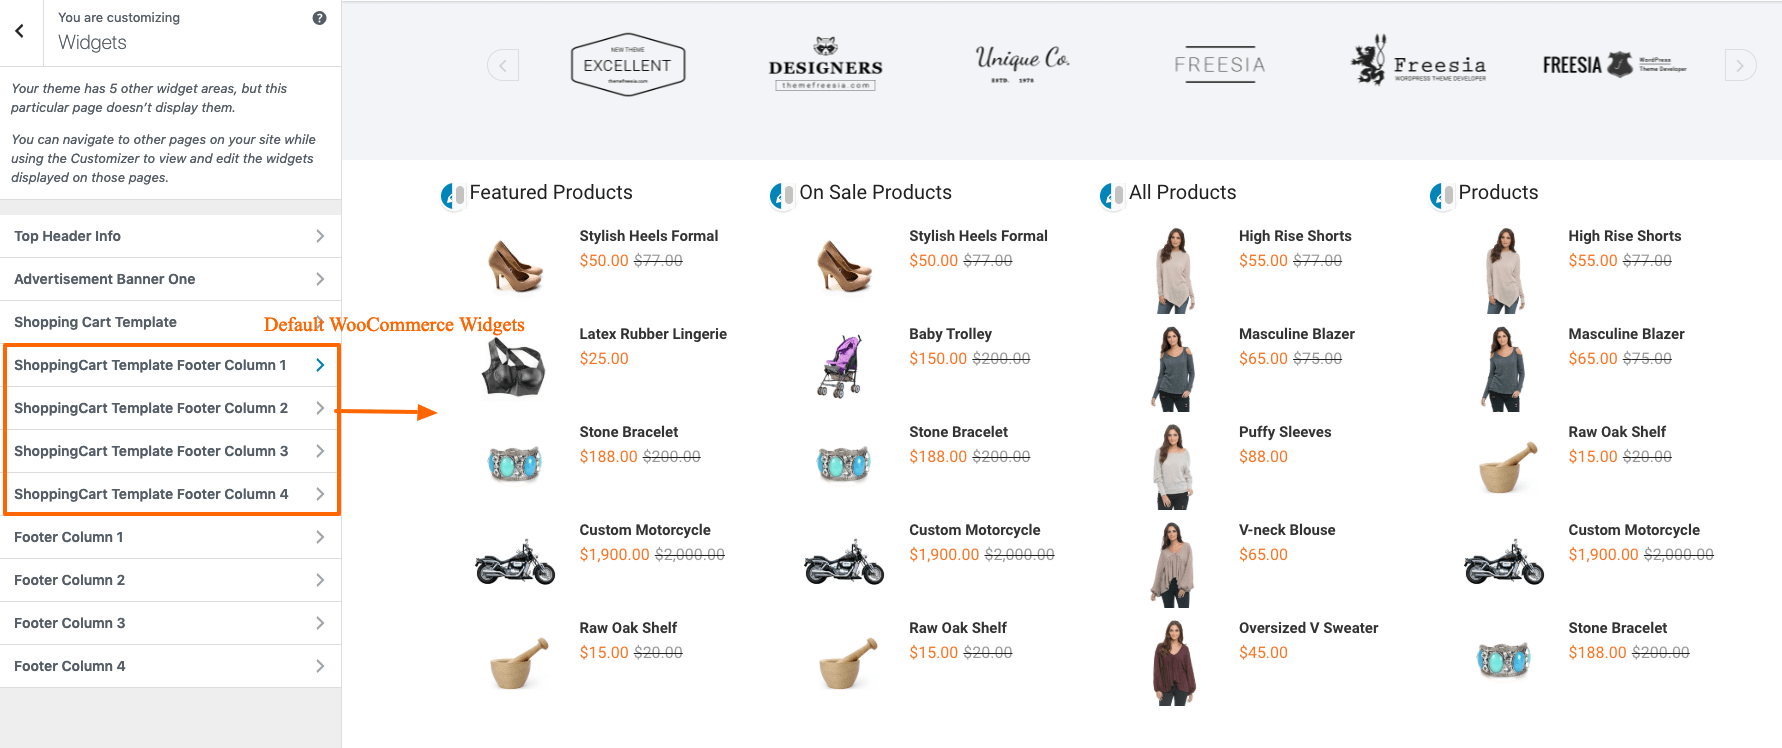 Shopping Cart Template FooterColumn 1/2/3/4 sidebar